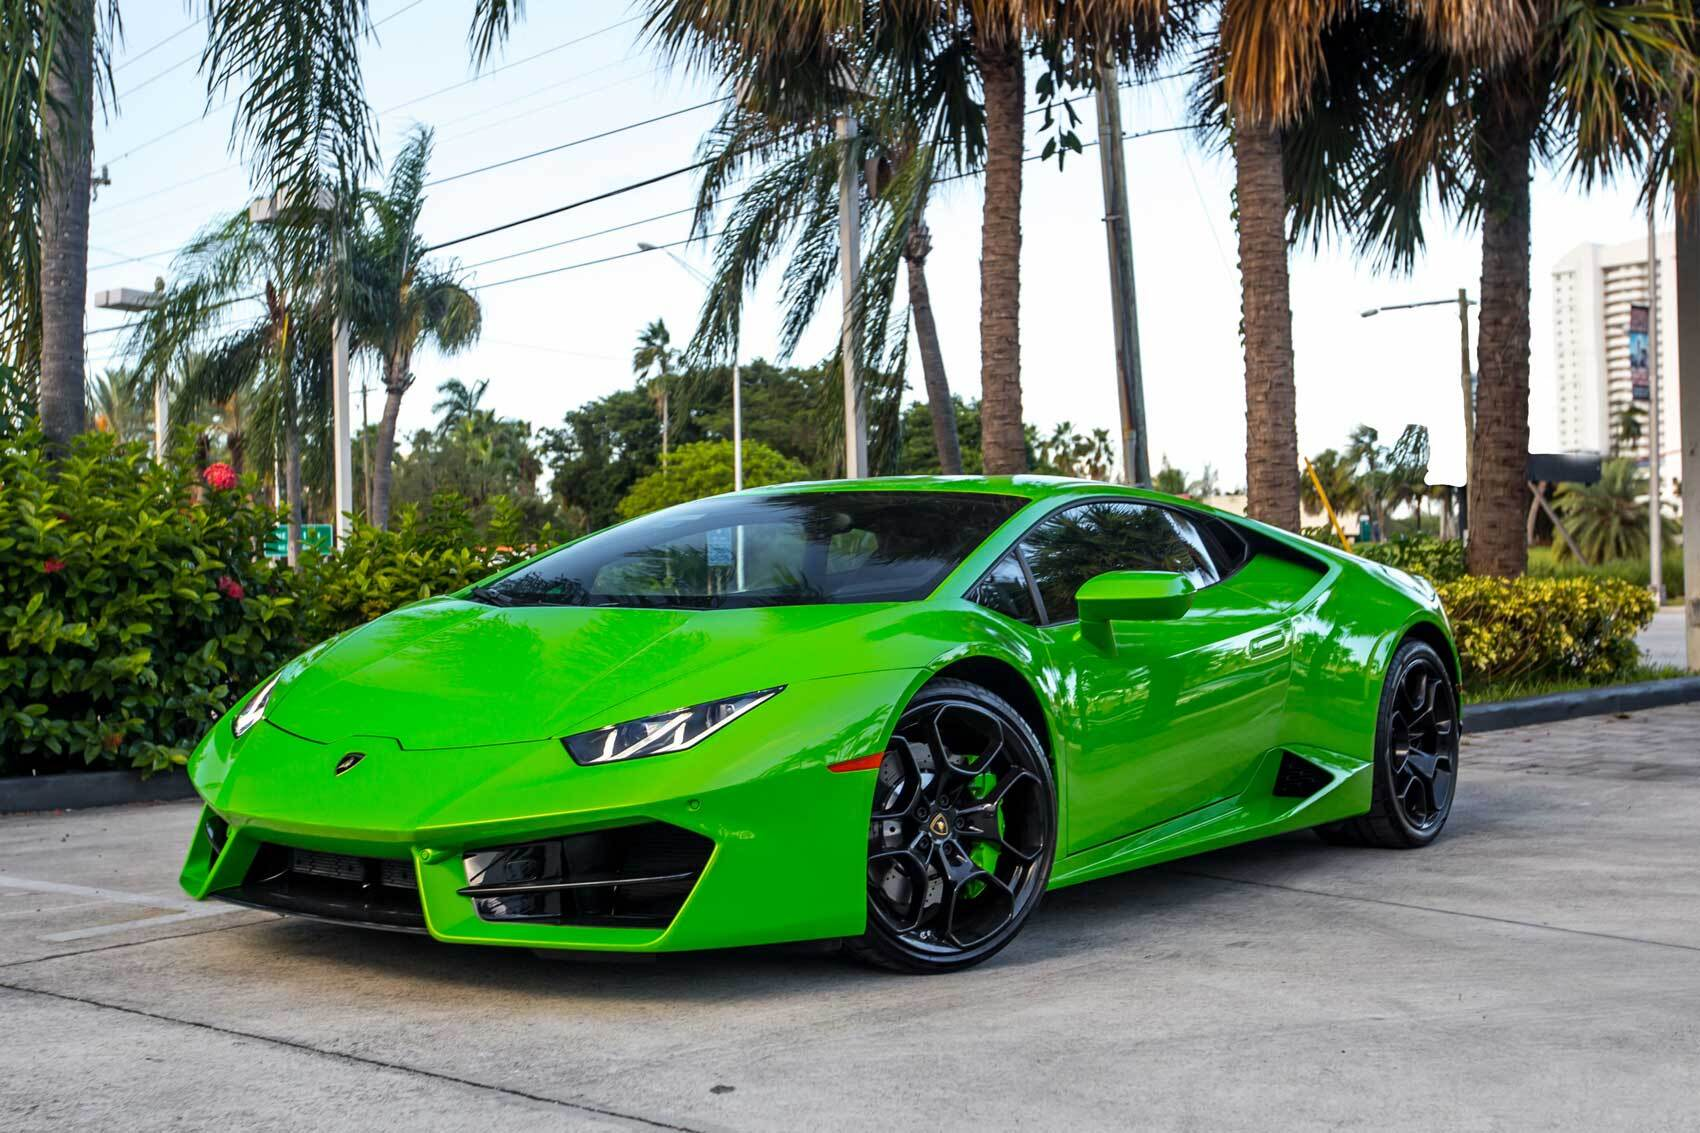 2018 Huracan LP 580-2 Coupe